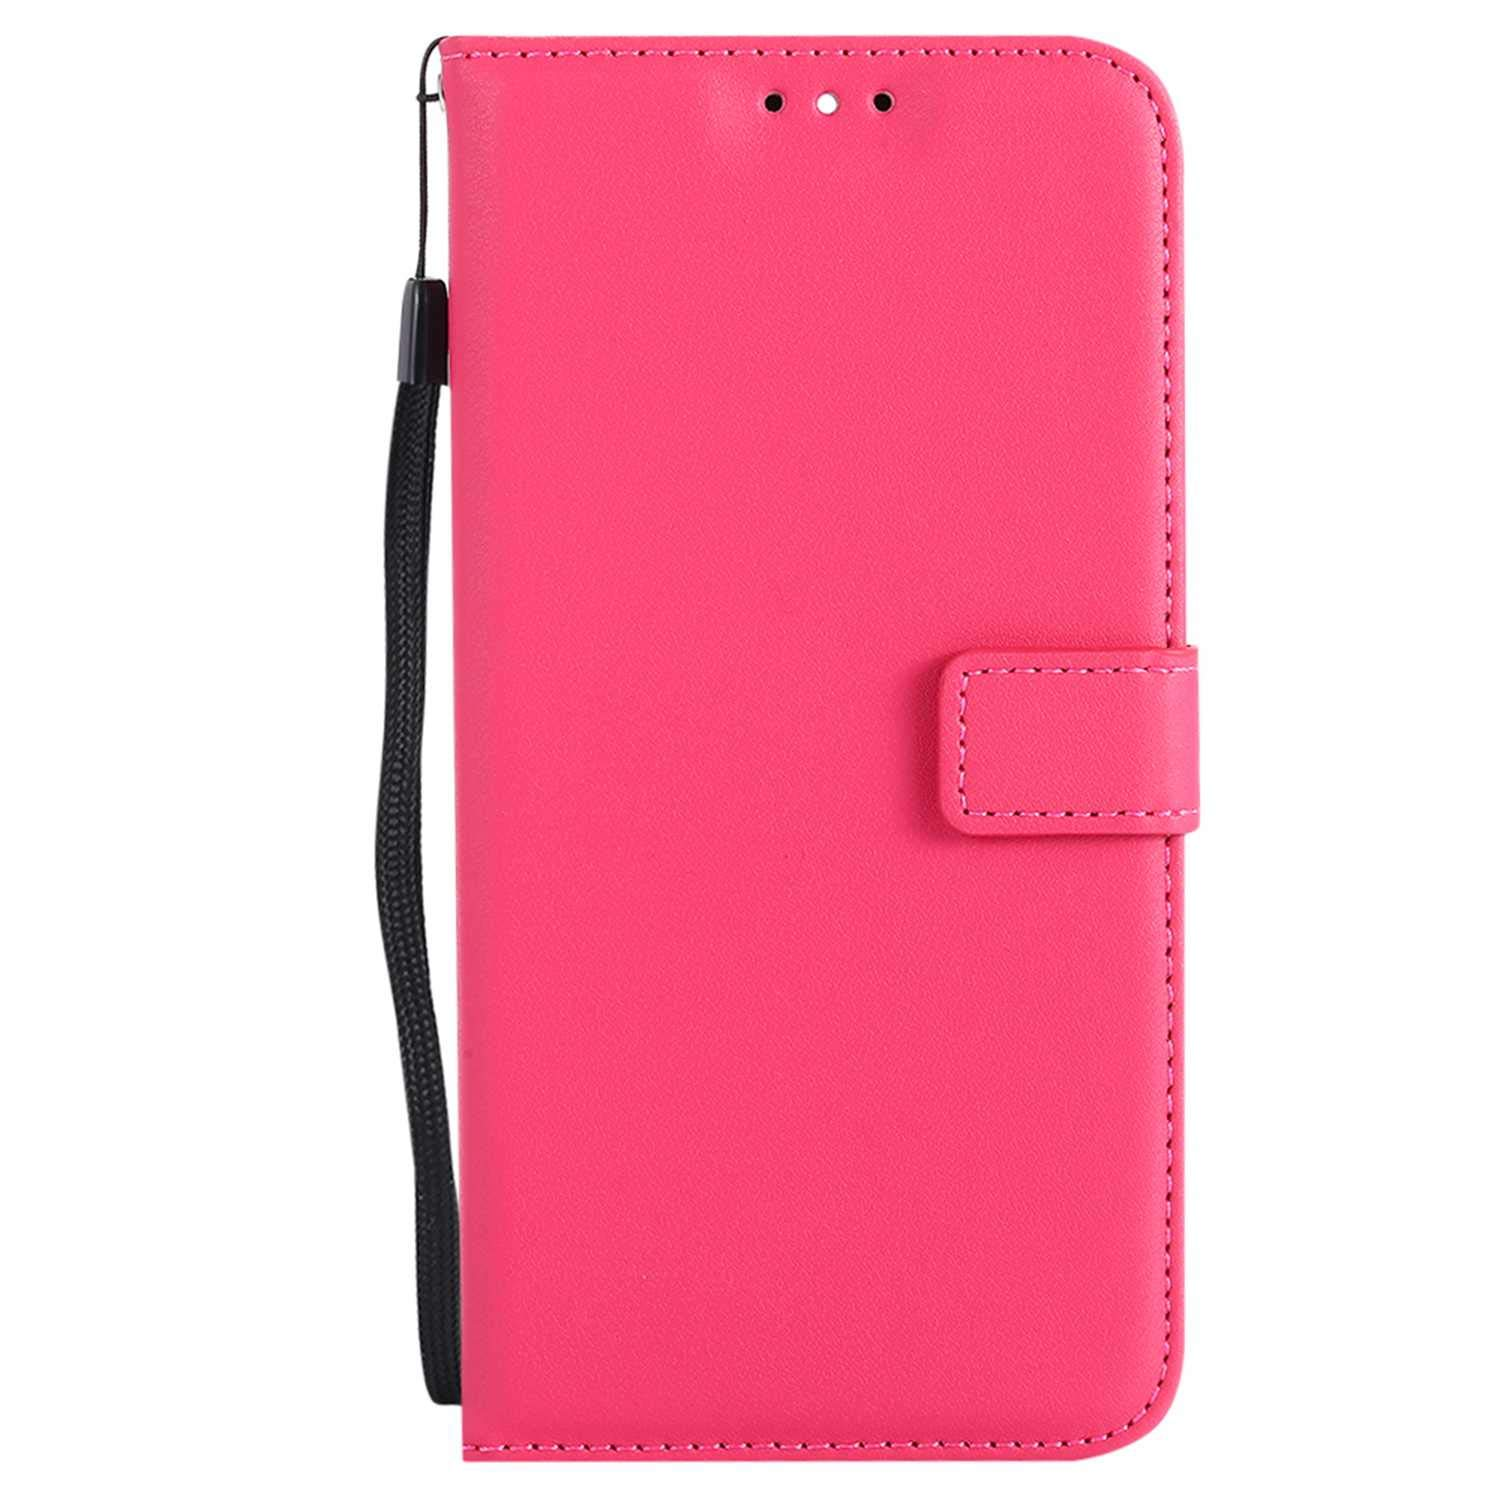 UNEXTATI Huawei Mate 10 Lite Case, Leather Magnetic Closure Flip Wallet Case with Card Slot and Wrist Strap, Slim Full Body Protective Case (Hot Pink #2)